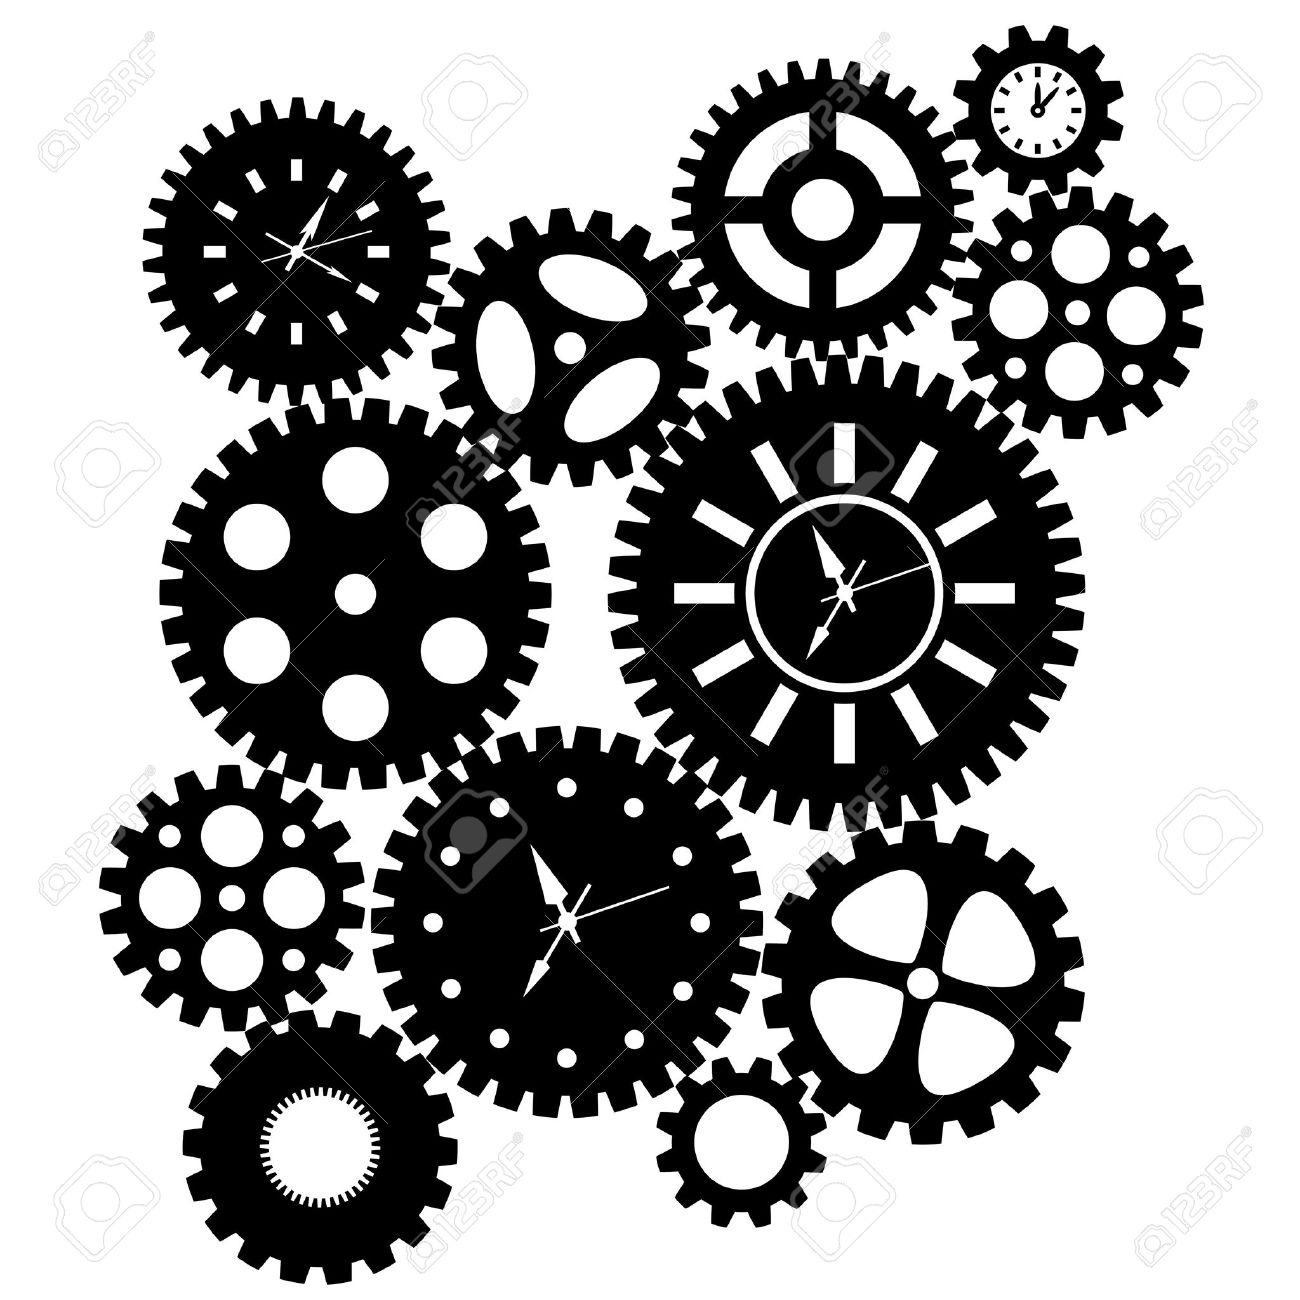 Illustration - Time Clock Gears Clipart -Illustration - Time Clock Gears Clipart Black SIlhouette Isolated on White  Background Illustration-20